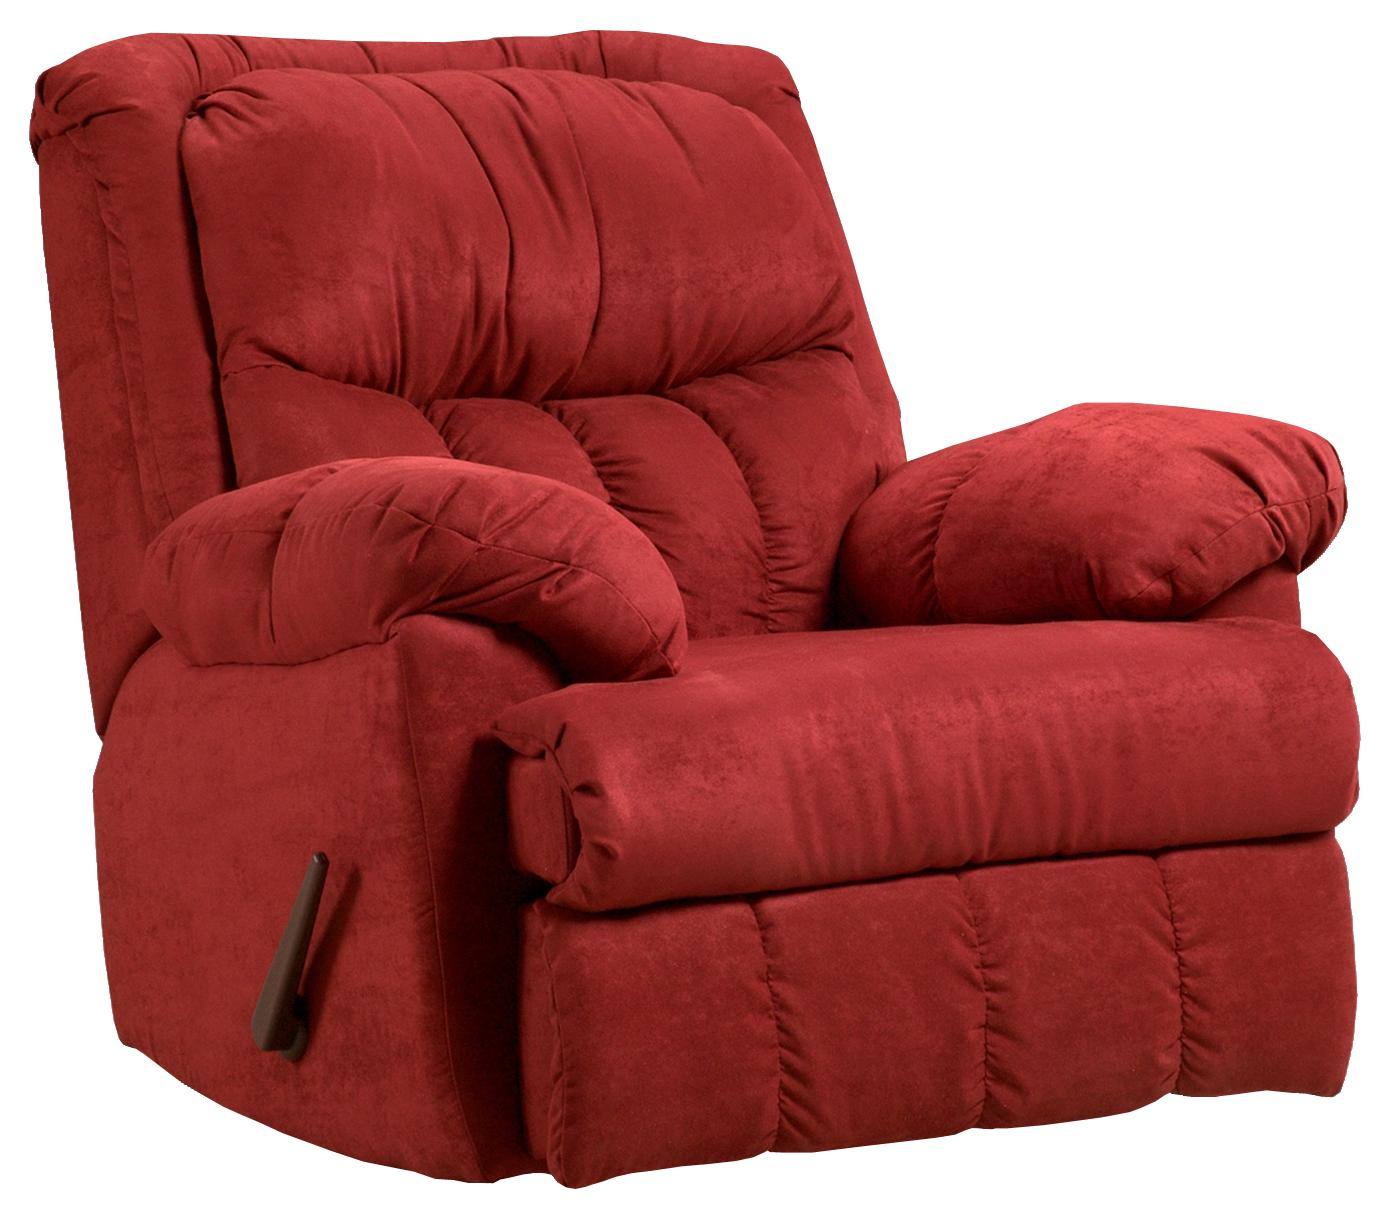 Affordable Furniture Sensations Casual Rocker Recliner  - Item Number: 2500 Red Brick